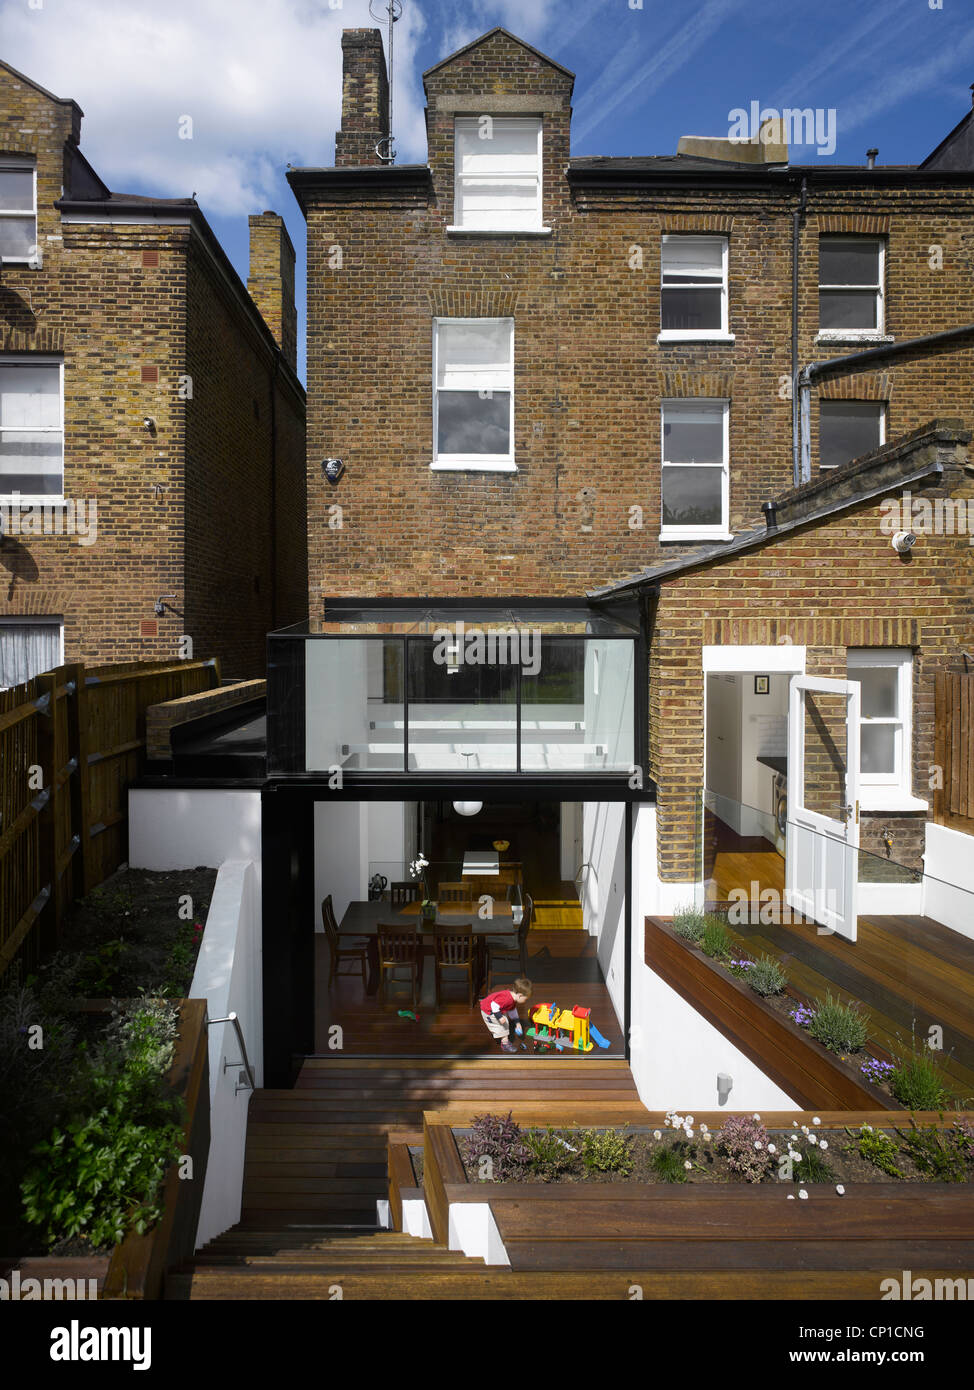 Garden view of house extension by Paul Archer Design near Hampstead Heath, London. - Stock Image